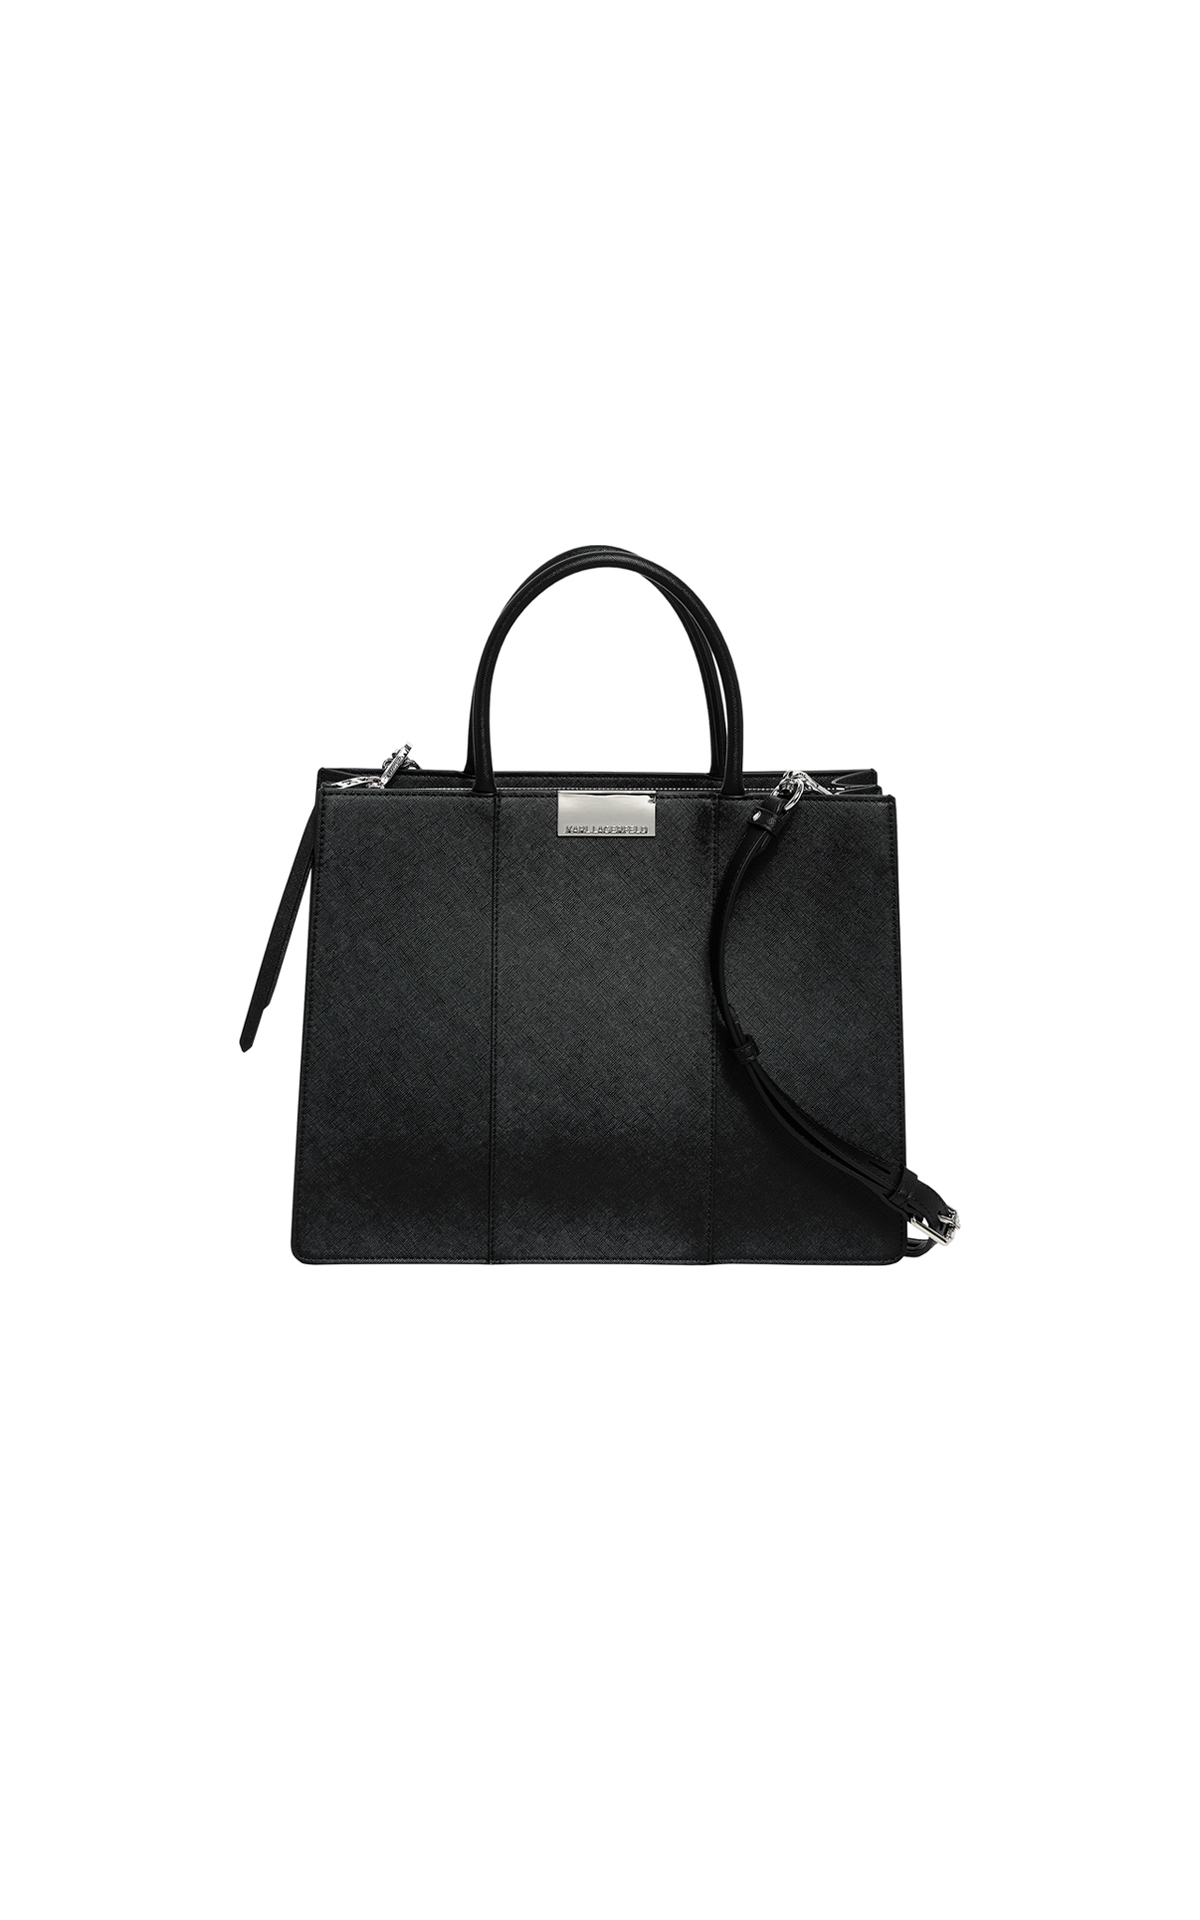 Karl Lagerfeld Mau Shopper at The Bicester Village Shopping Collection